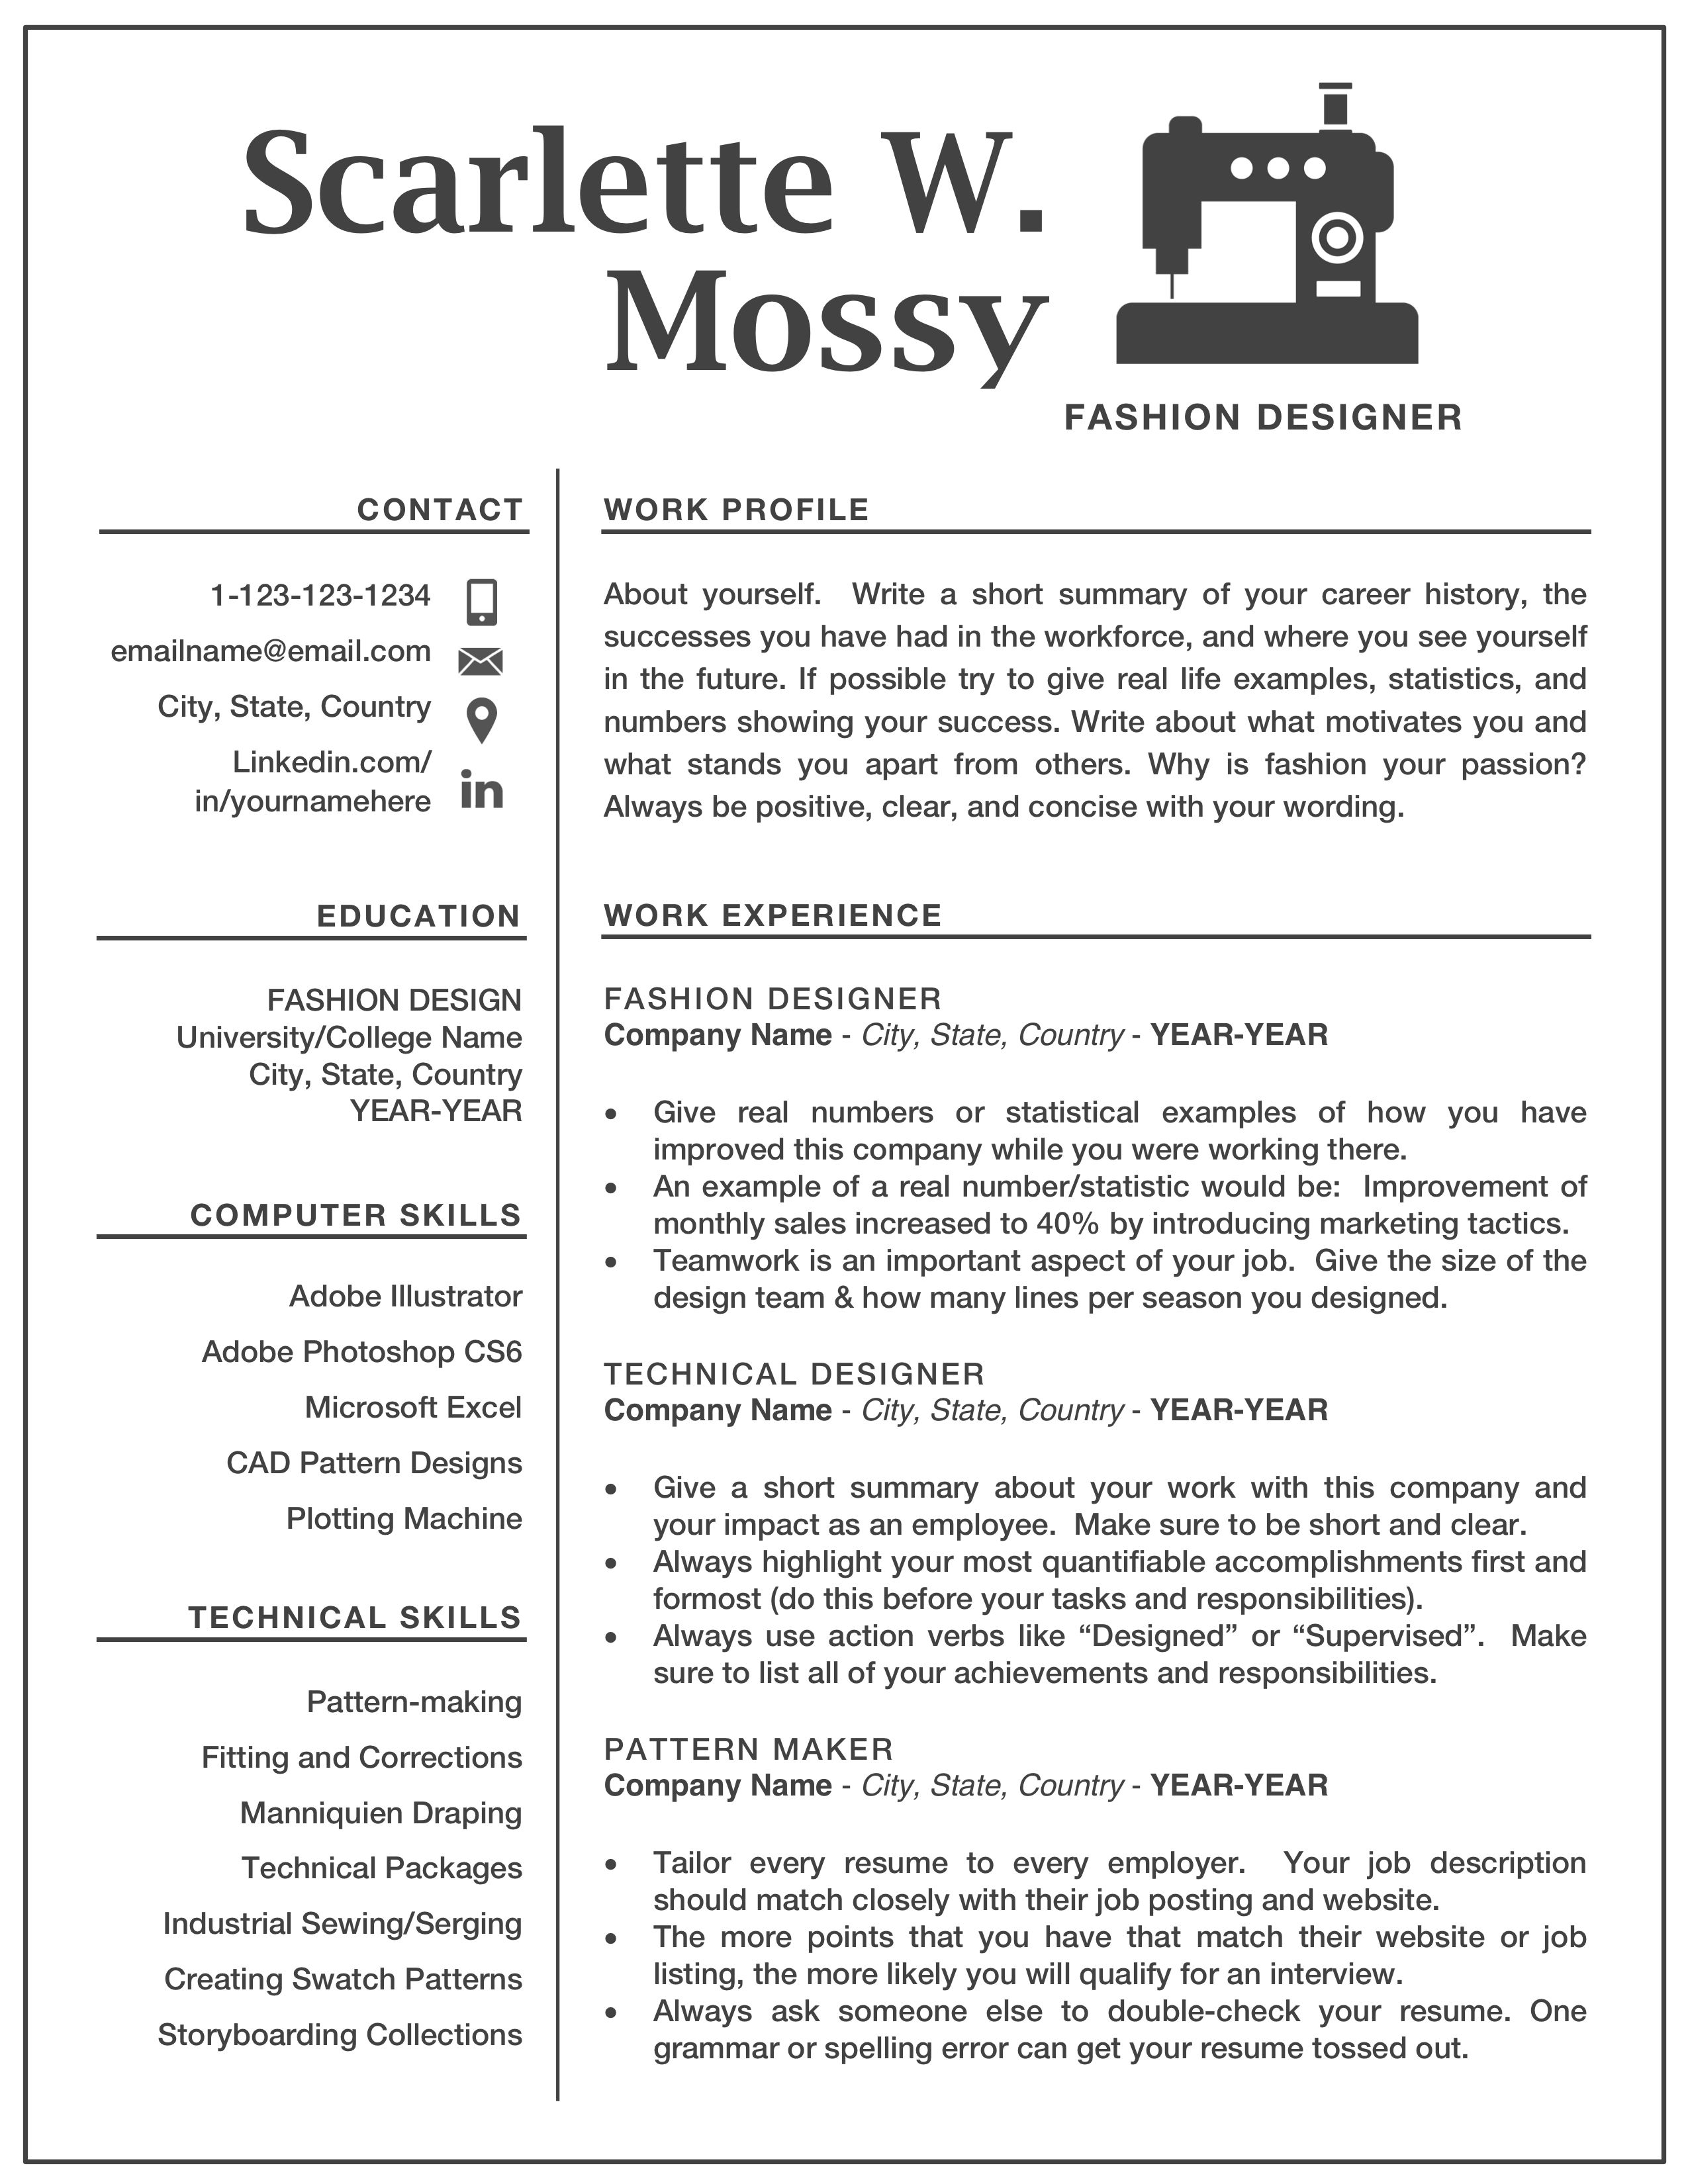 Resume Template Made For Fashion Design Seamstress Etc But Can Be Customized